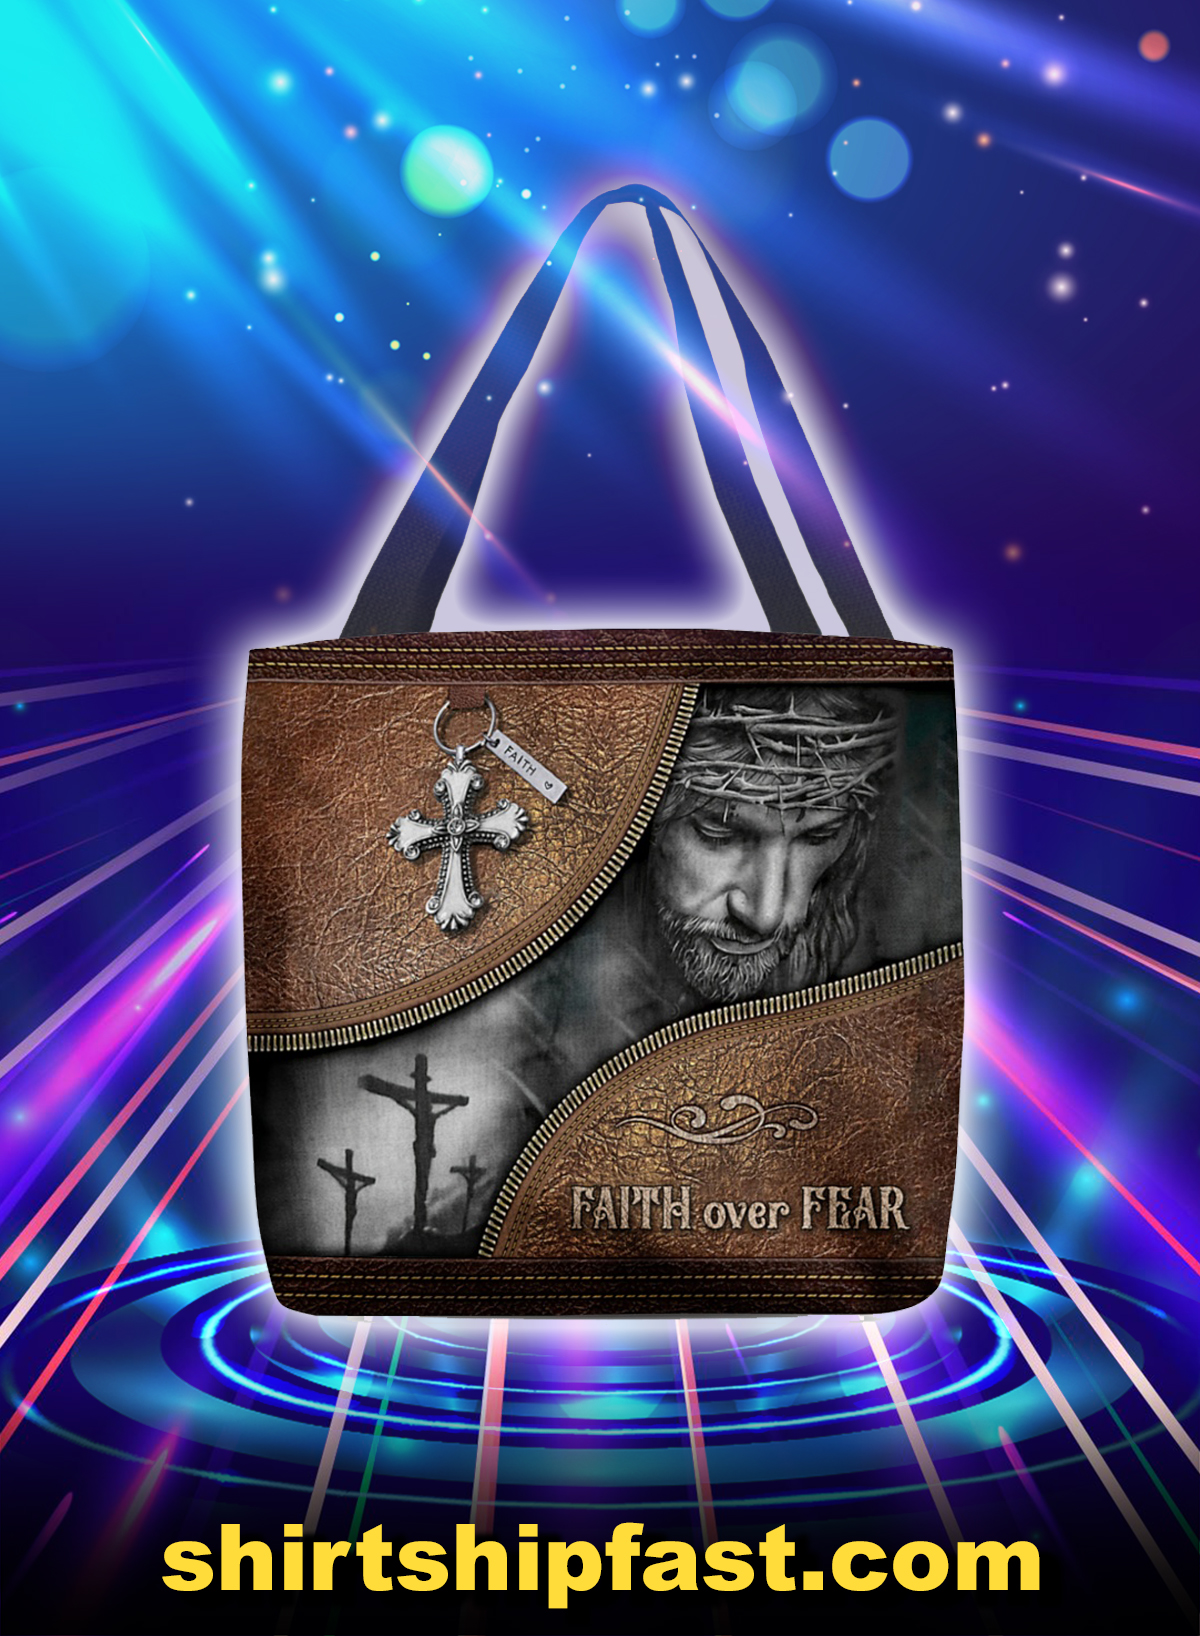 Faith over fear tote bag - Picture 1